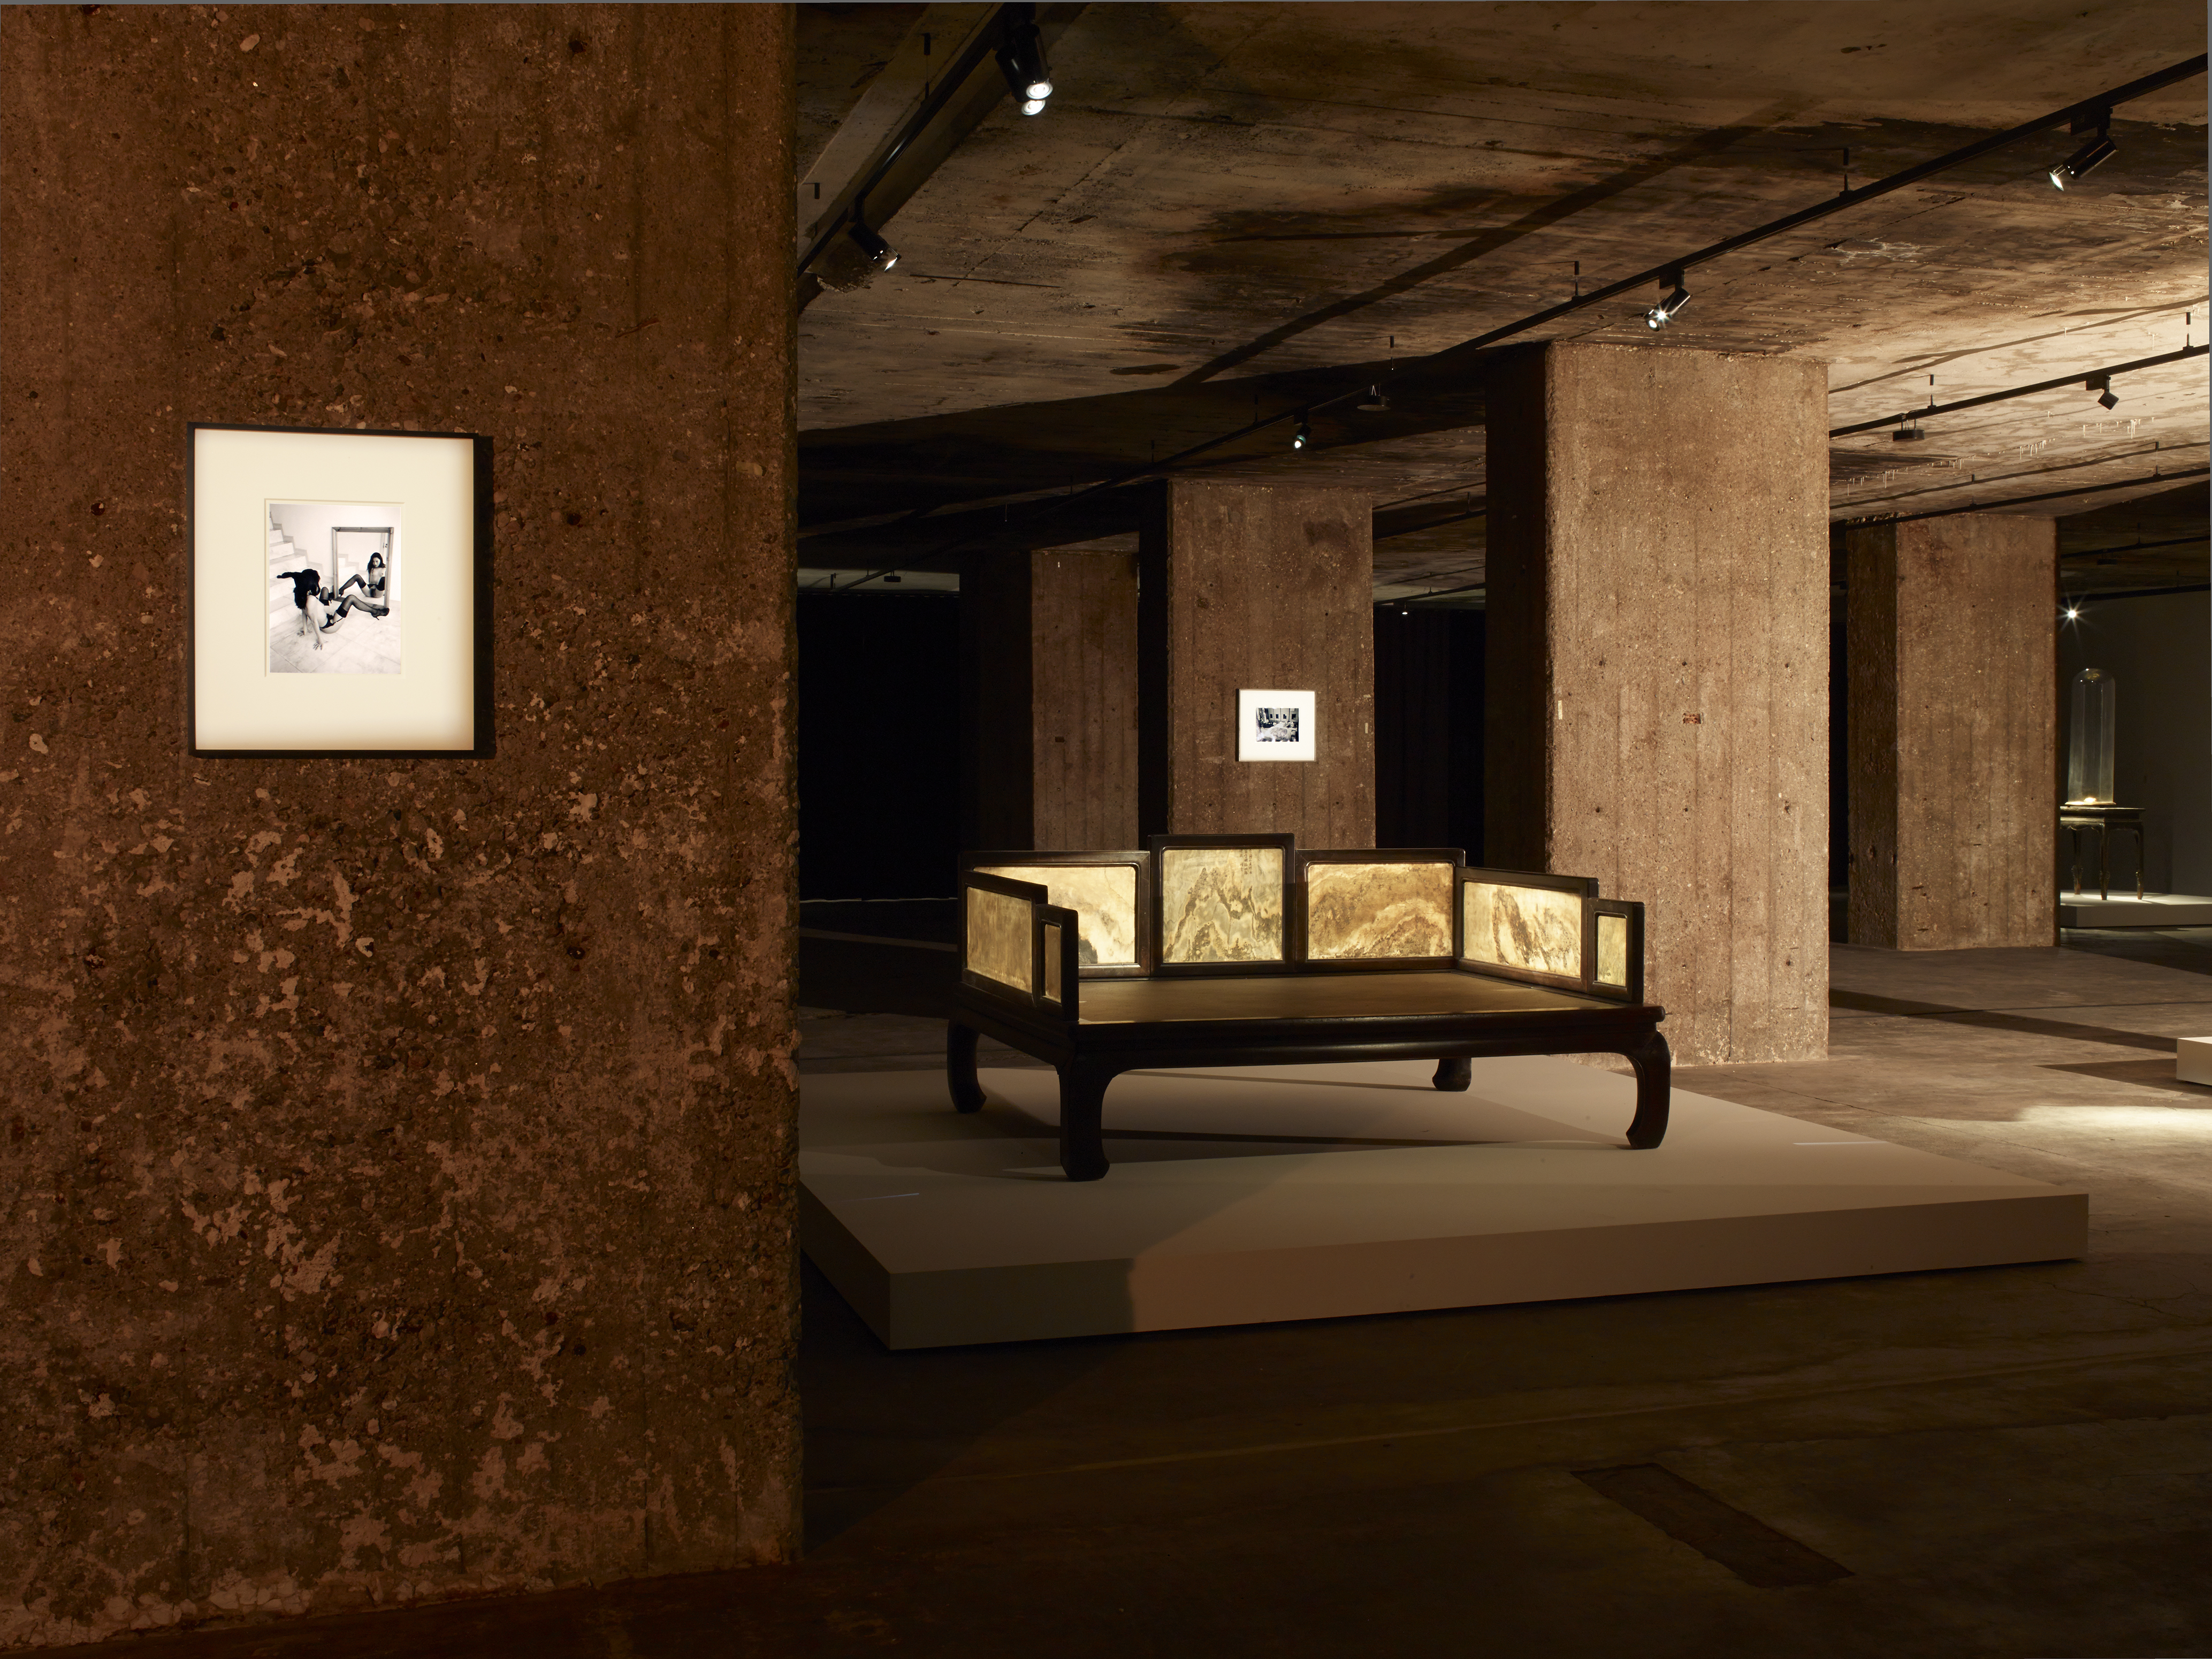 Image: Exhibition view of The Feuerle Collection, Lohan Bed, Qing Dynasty, 17 Jichi wood. Approx. 149 x 204 x 100cm. In the background works by Nobuyoshi Araki. Photo: Nic Tenwiggenhorn / VG Bild-Kunst, Bonn. © The Feuerle Collection.